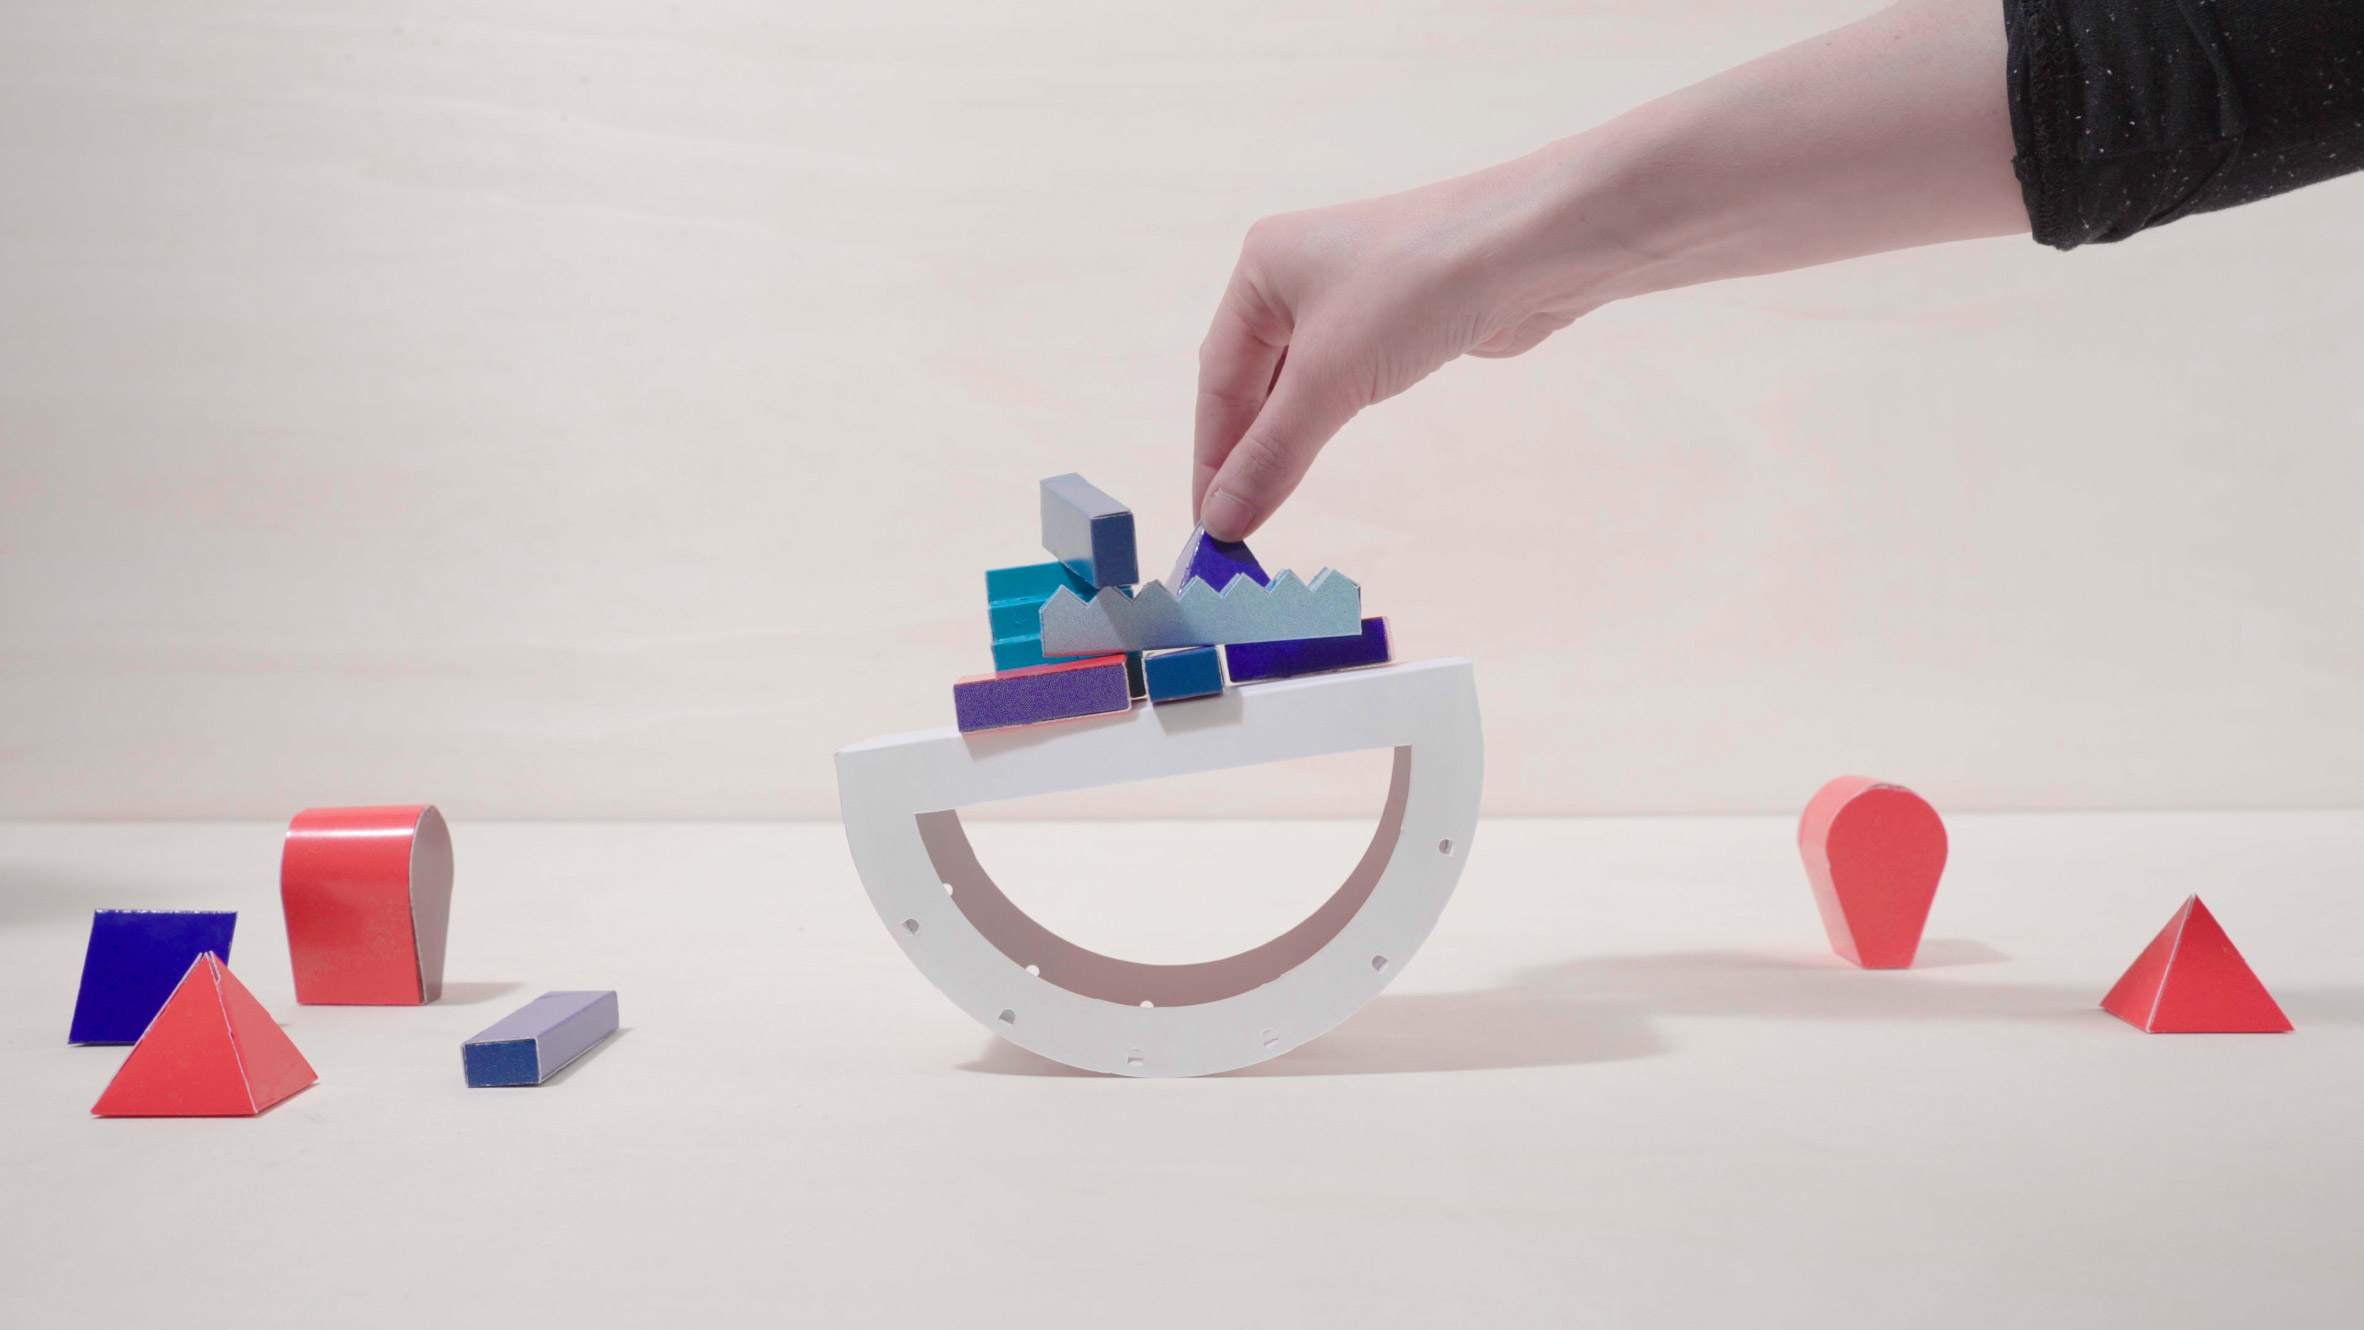 Papier Machine booklet features electronic toys that are made from its pages